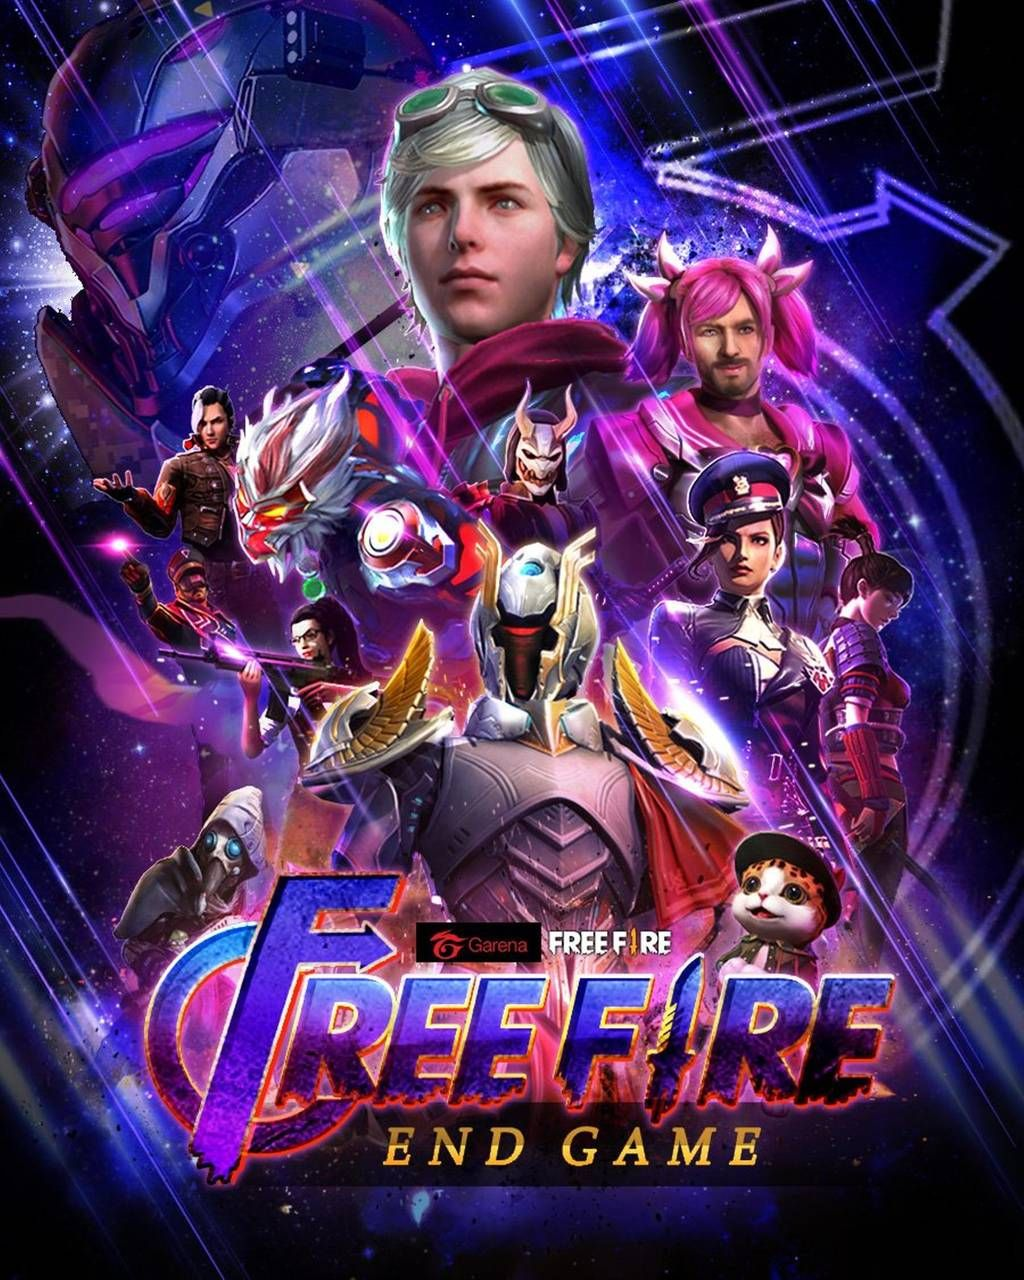 Download Free Fire End Game Wallpaper by Edder211510879